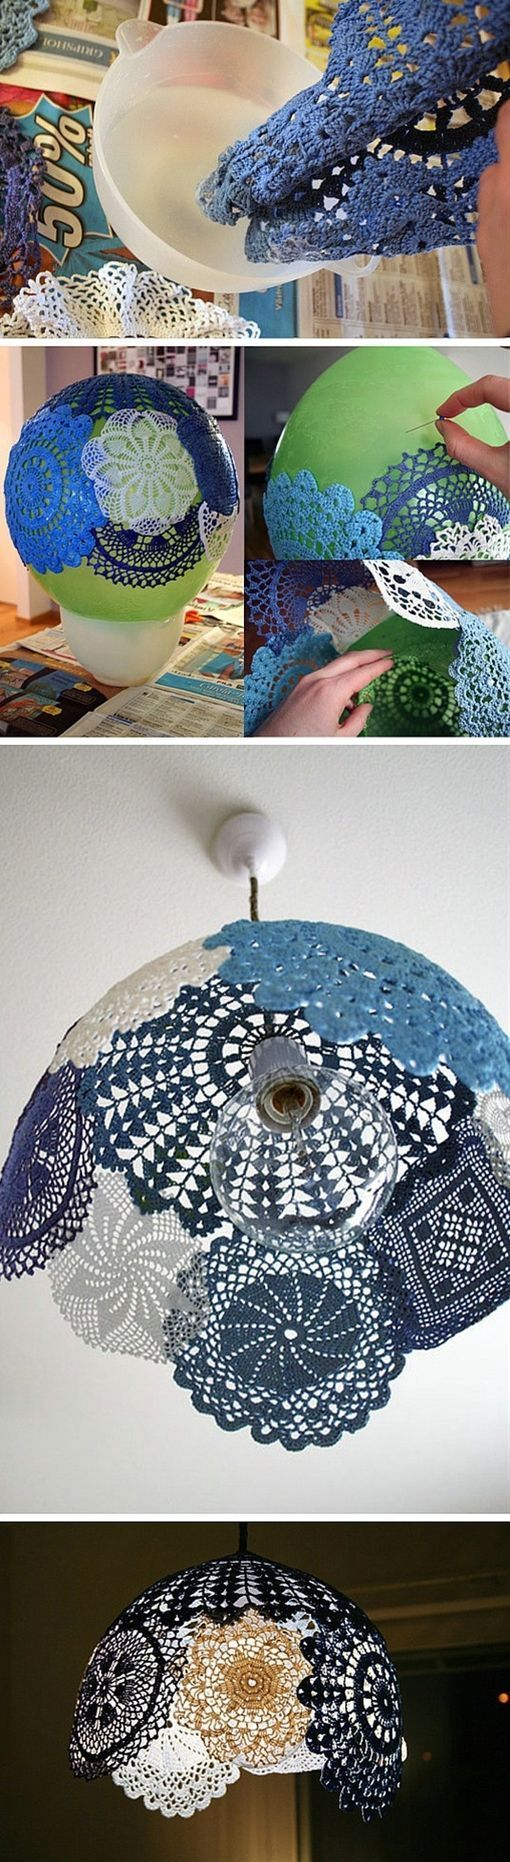 34 Beautiful Diy Chandelier Ideas That Will Light Up Your Home